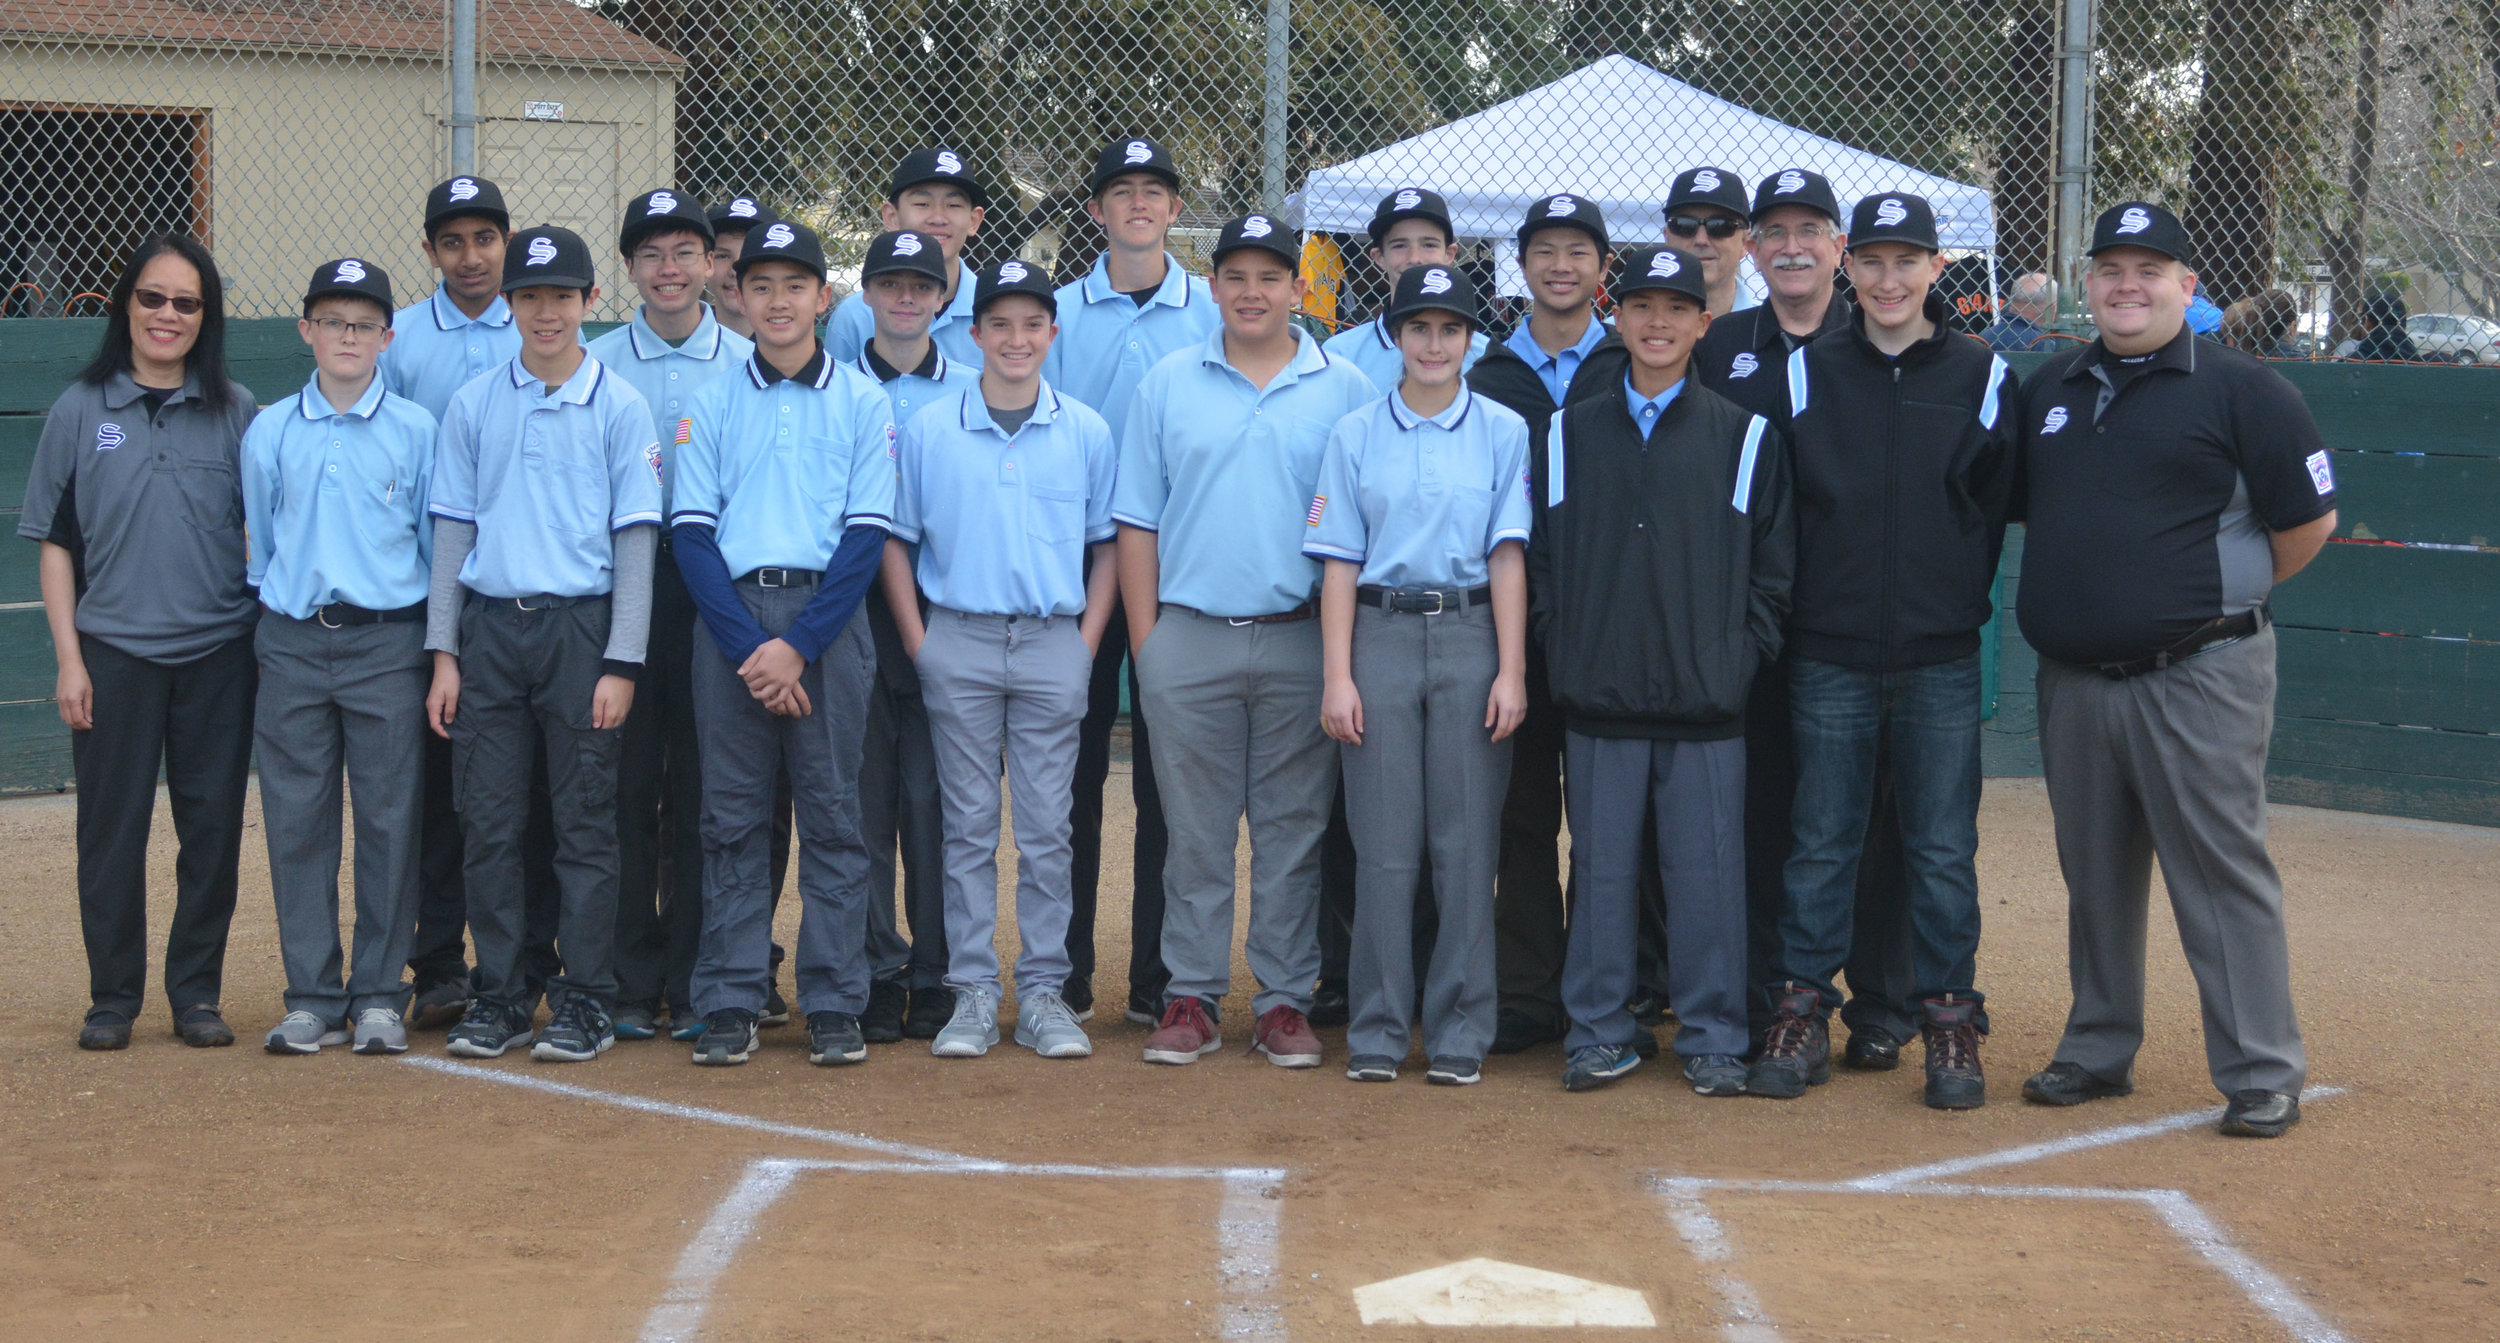 Majority of the 2018 Umpire Crew